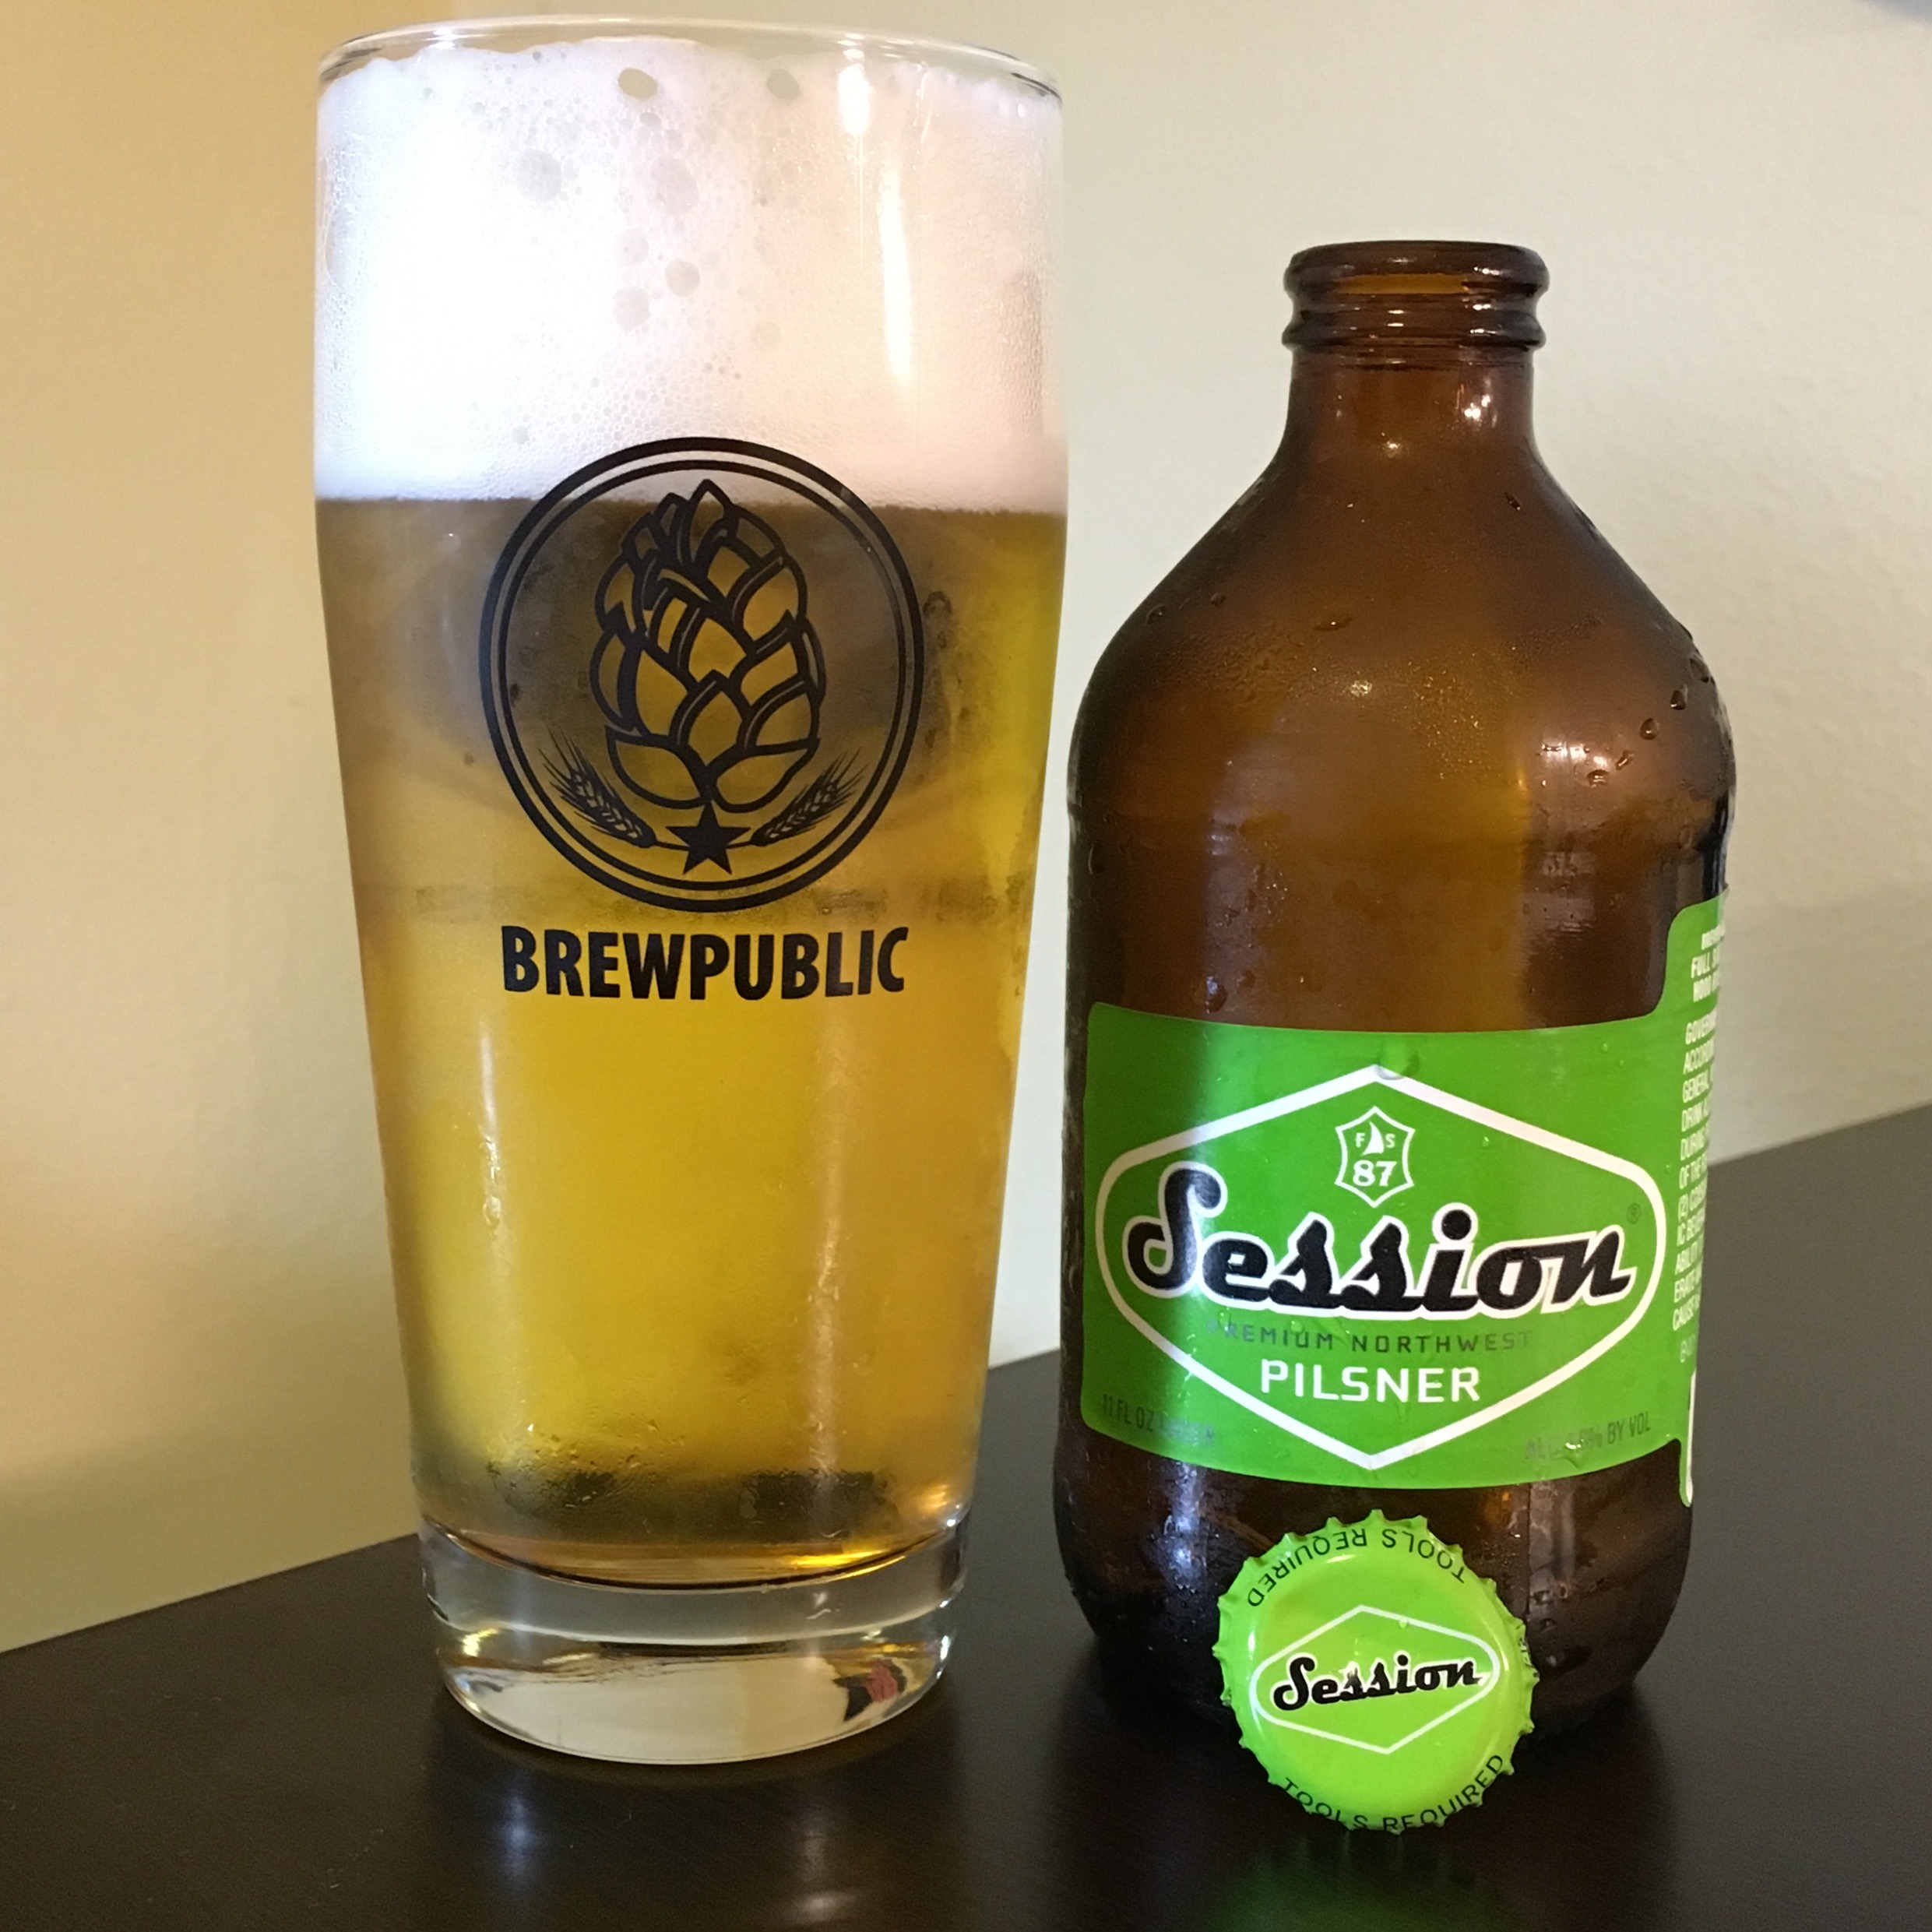 Full Sail Session Premium Northwest Pilsner poured into a Brewpublic glass..jpg